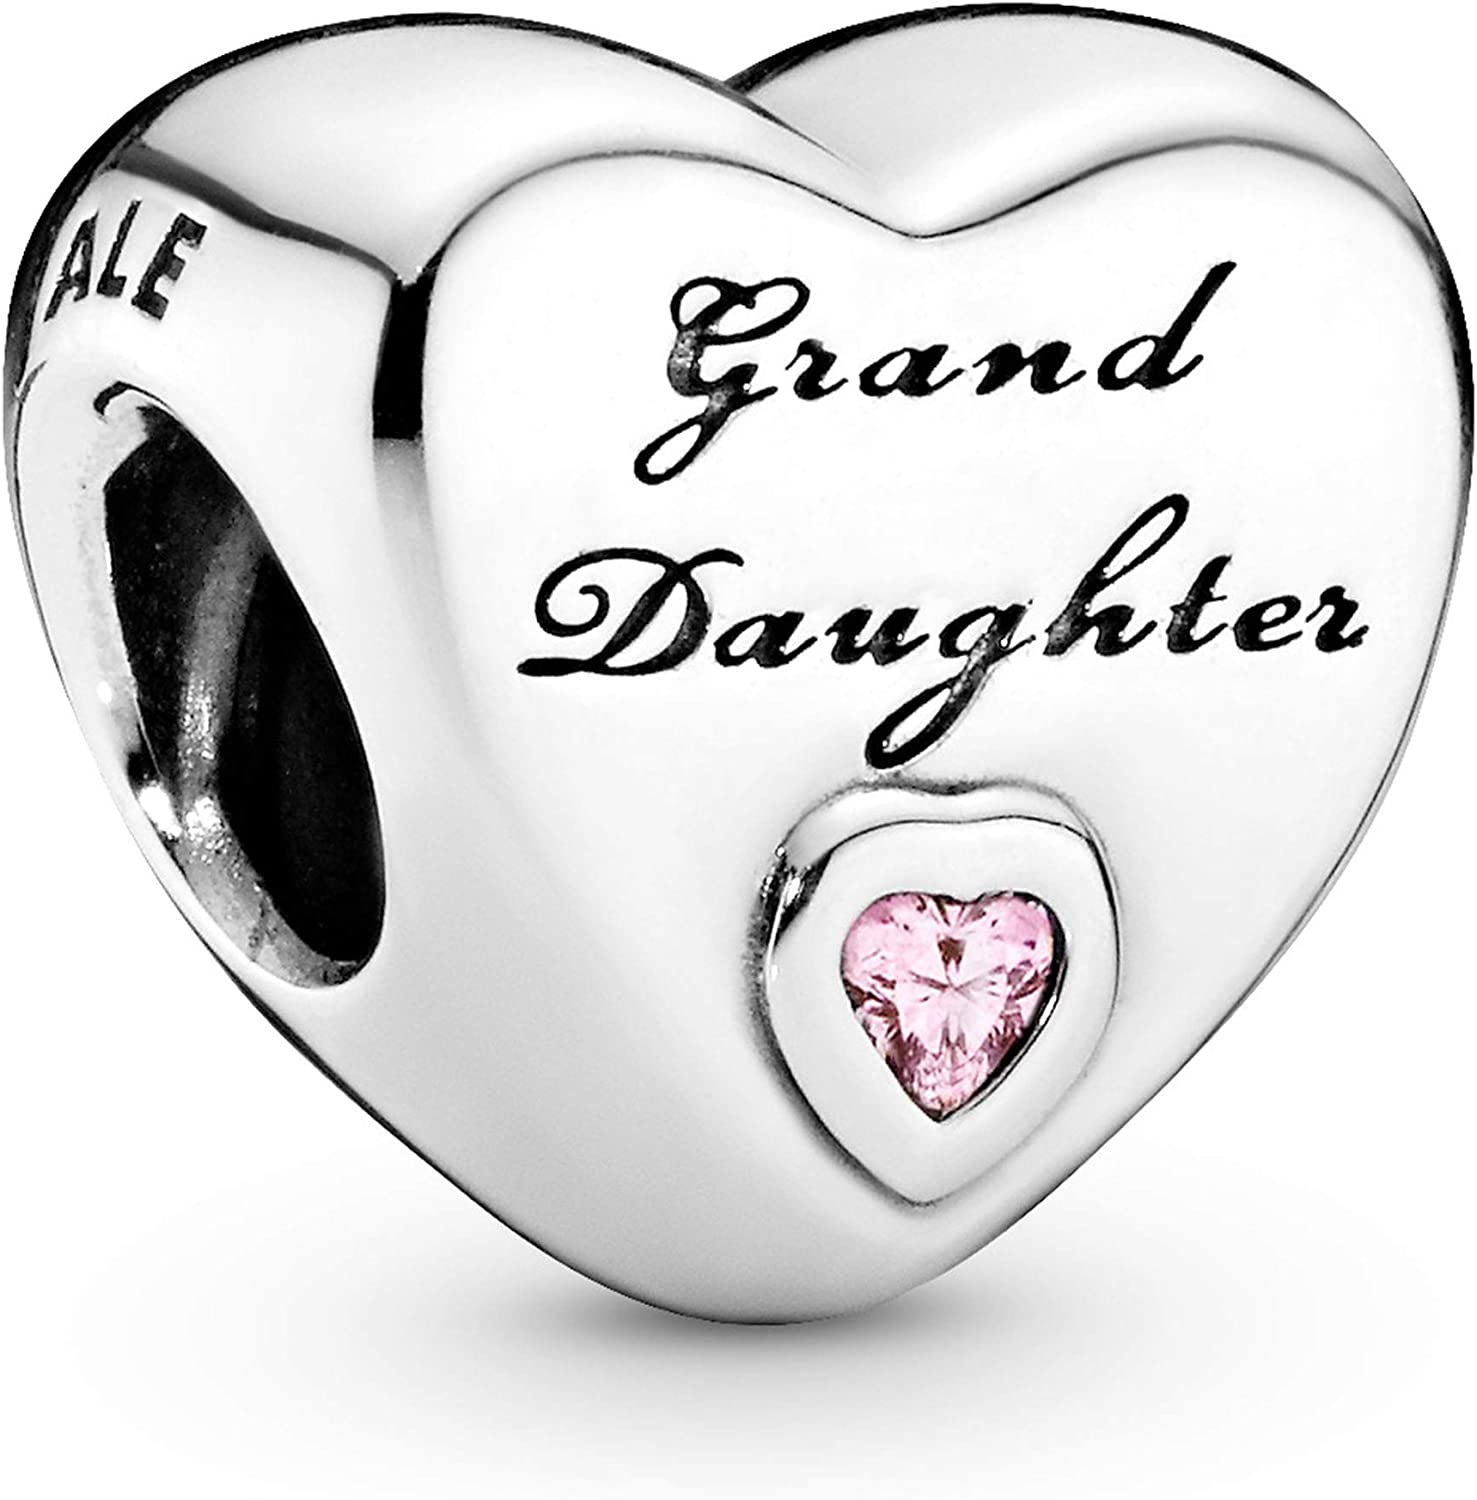 Pandora Jewelry Granddaughter's Love Cubic Zirconia Charm in Sterling Silver